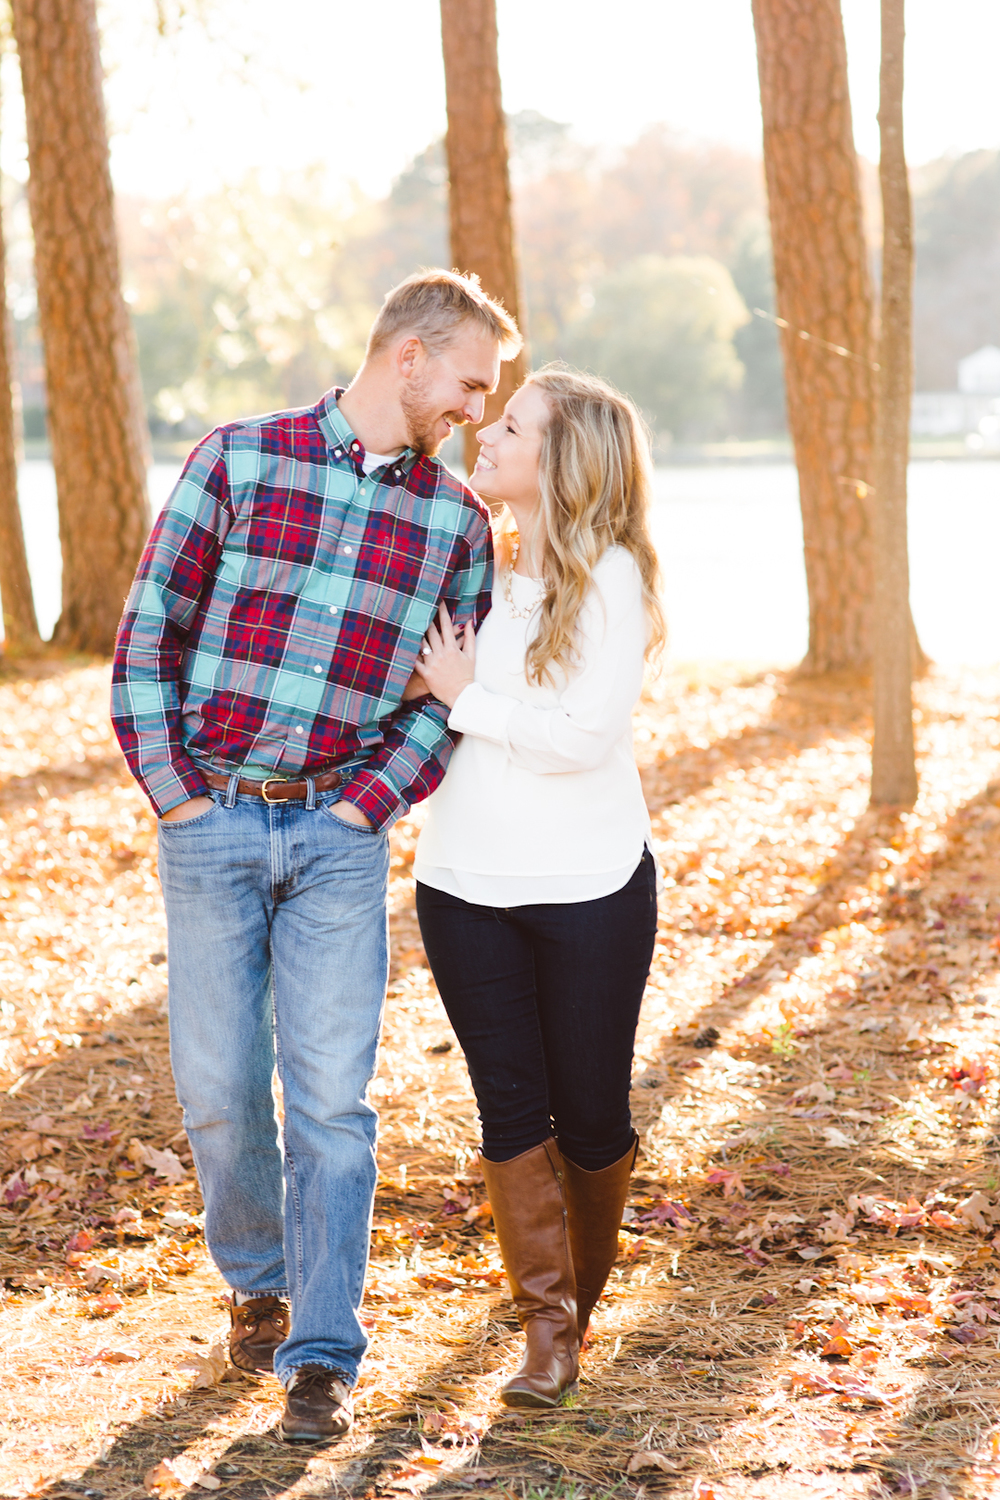 eastern-shore-maryland-sun-filled-engagement-session-brooke-michelle-photography-53.jpg